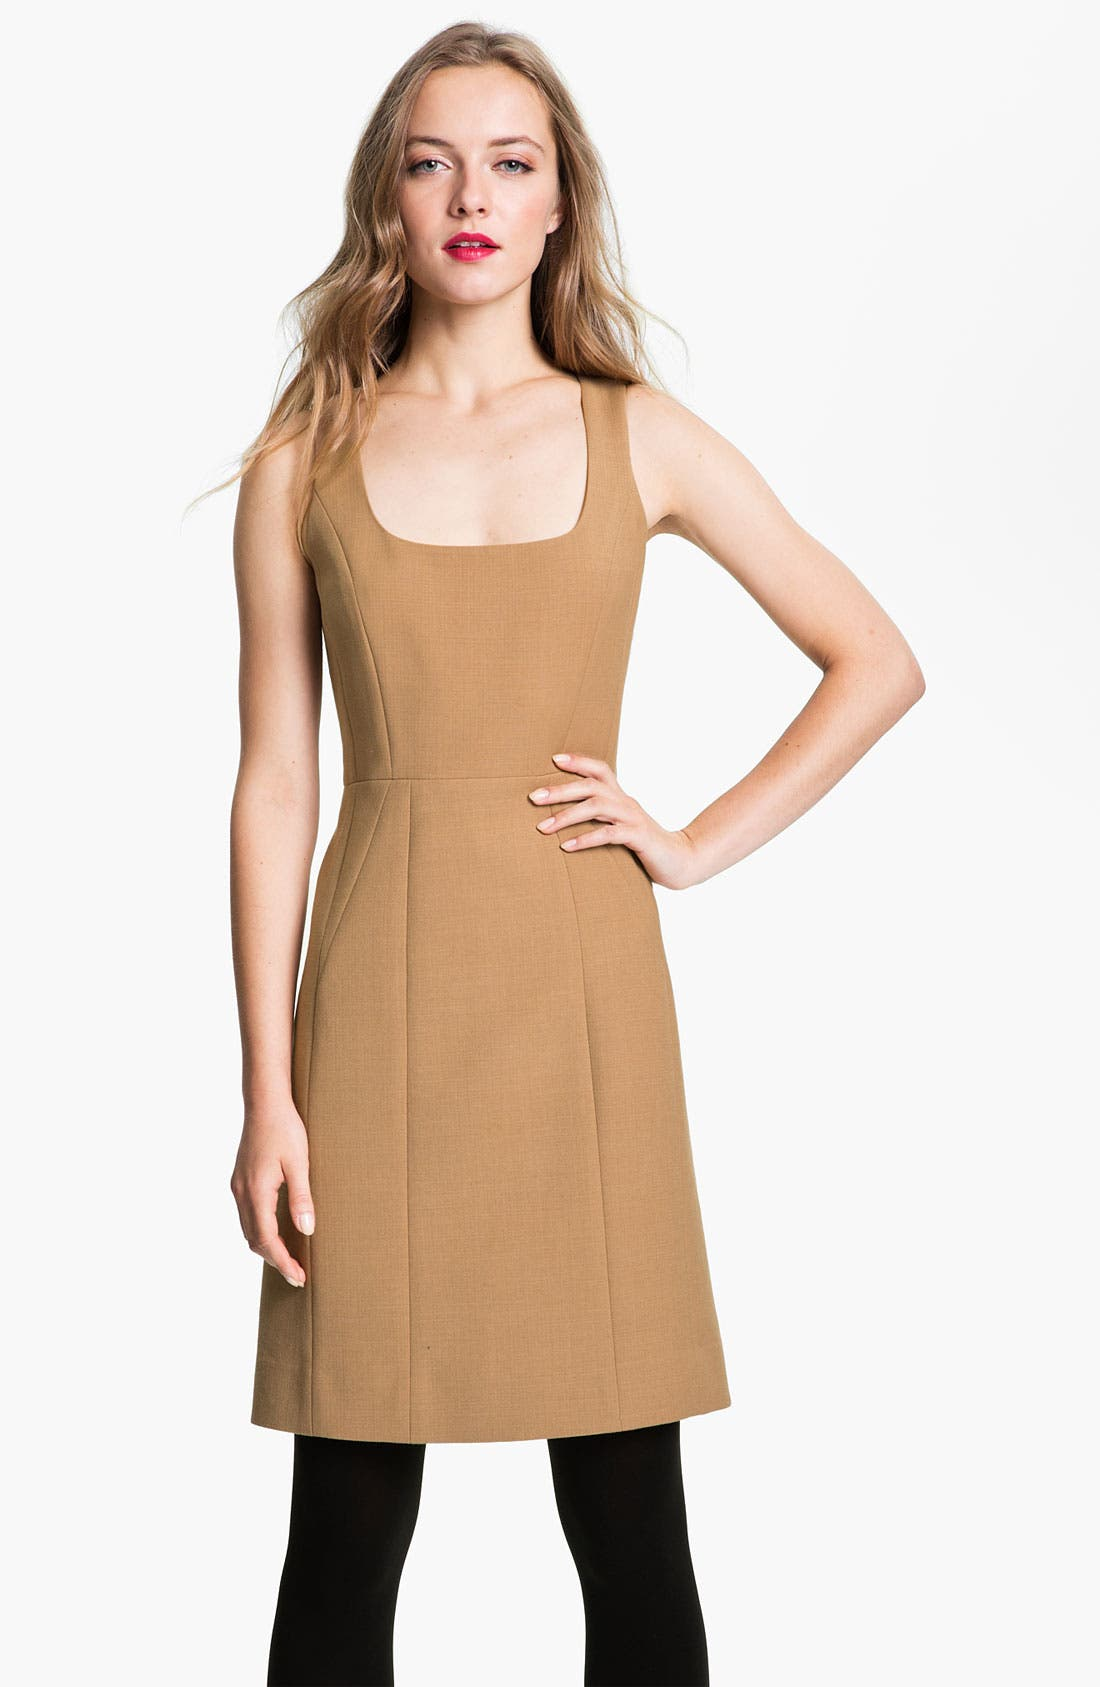 Alternate Image 1 Selected - Tory Burch 'Azalea' Stretch Wool Sheath Dress